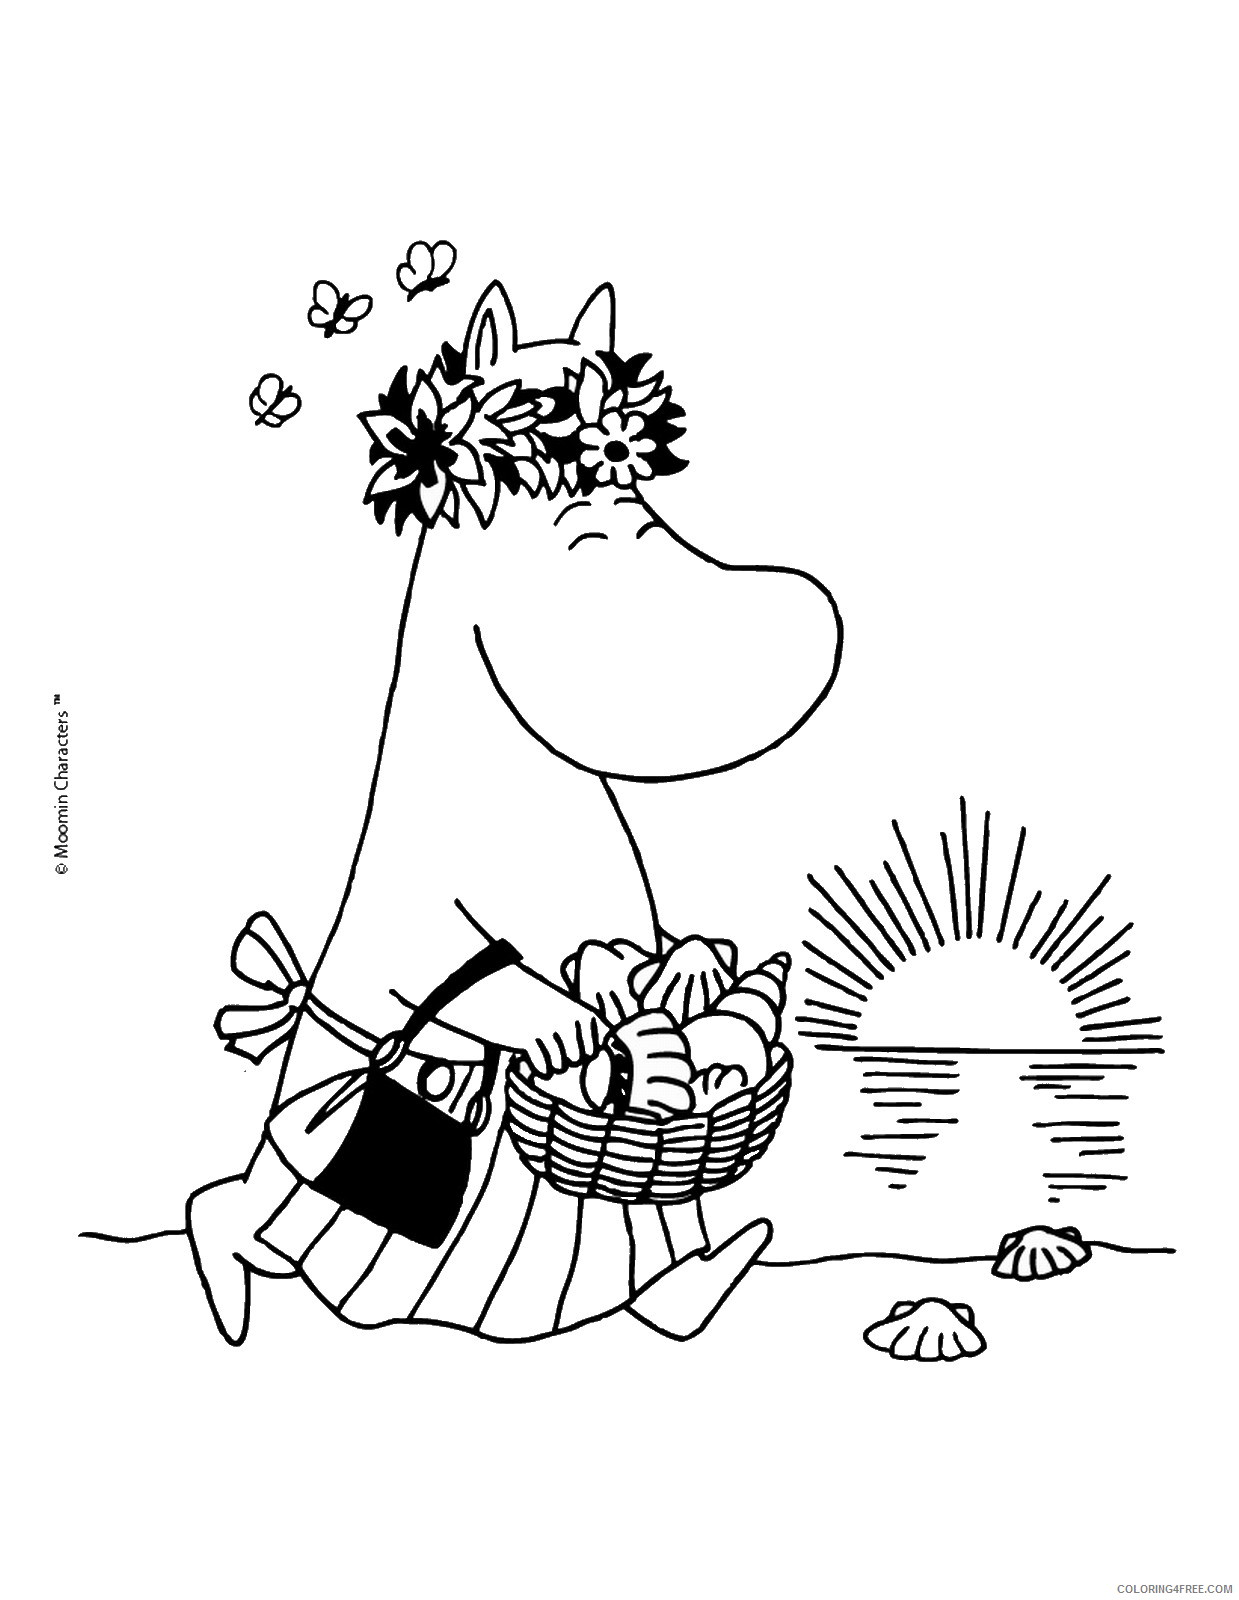 The Moomins Coloring Pages Cartoons moomins_cl_12 Printable 2020 6492 Coloring4free